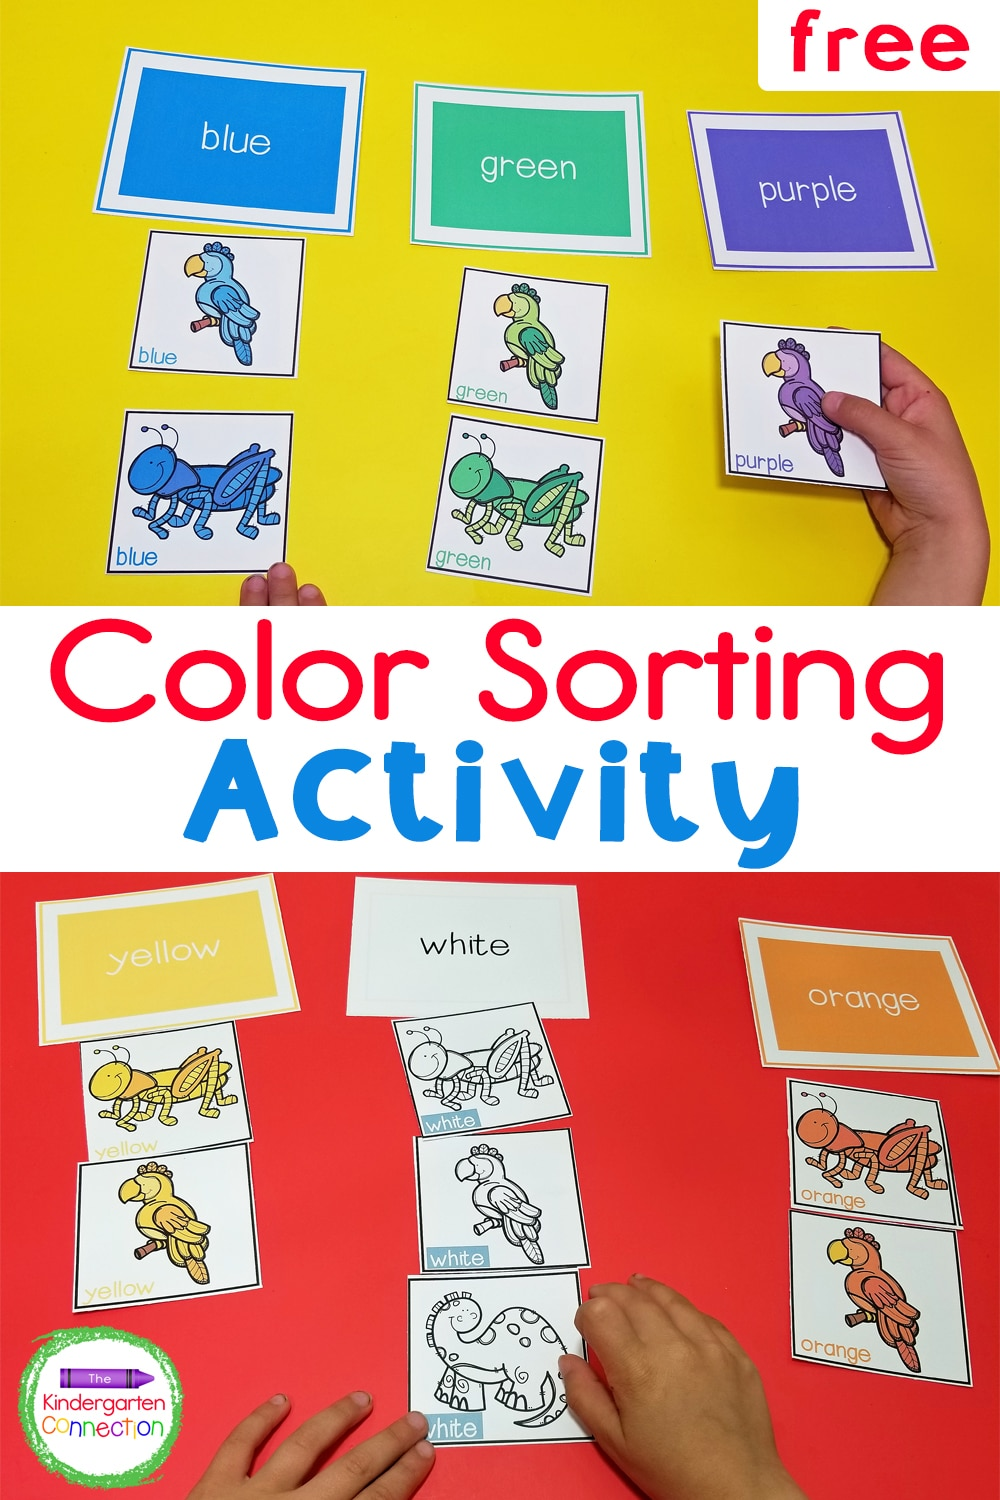 This free Printable Color Sorting Activity for Pre-K & Kindergarten is great for practicing color recognition and learning color words, too!